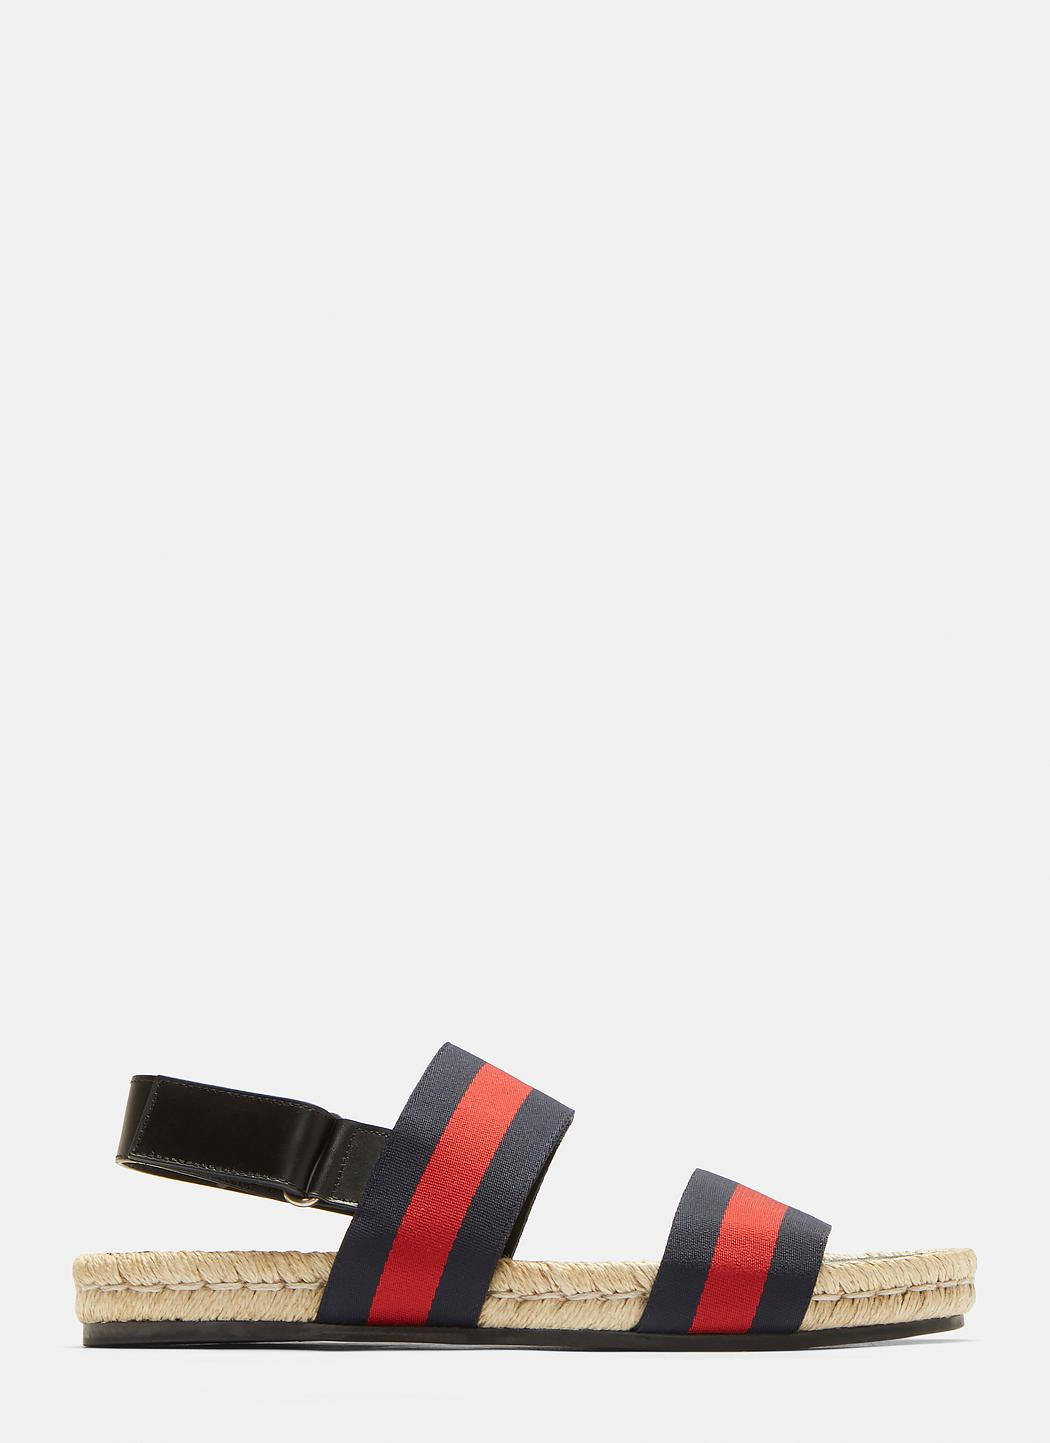 bda777f4329 Lyst - Gucci Web-stripe Sandals in Blue for Men